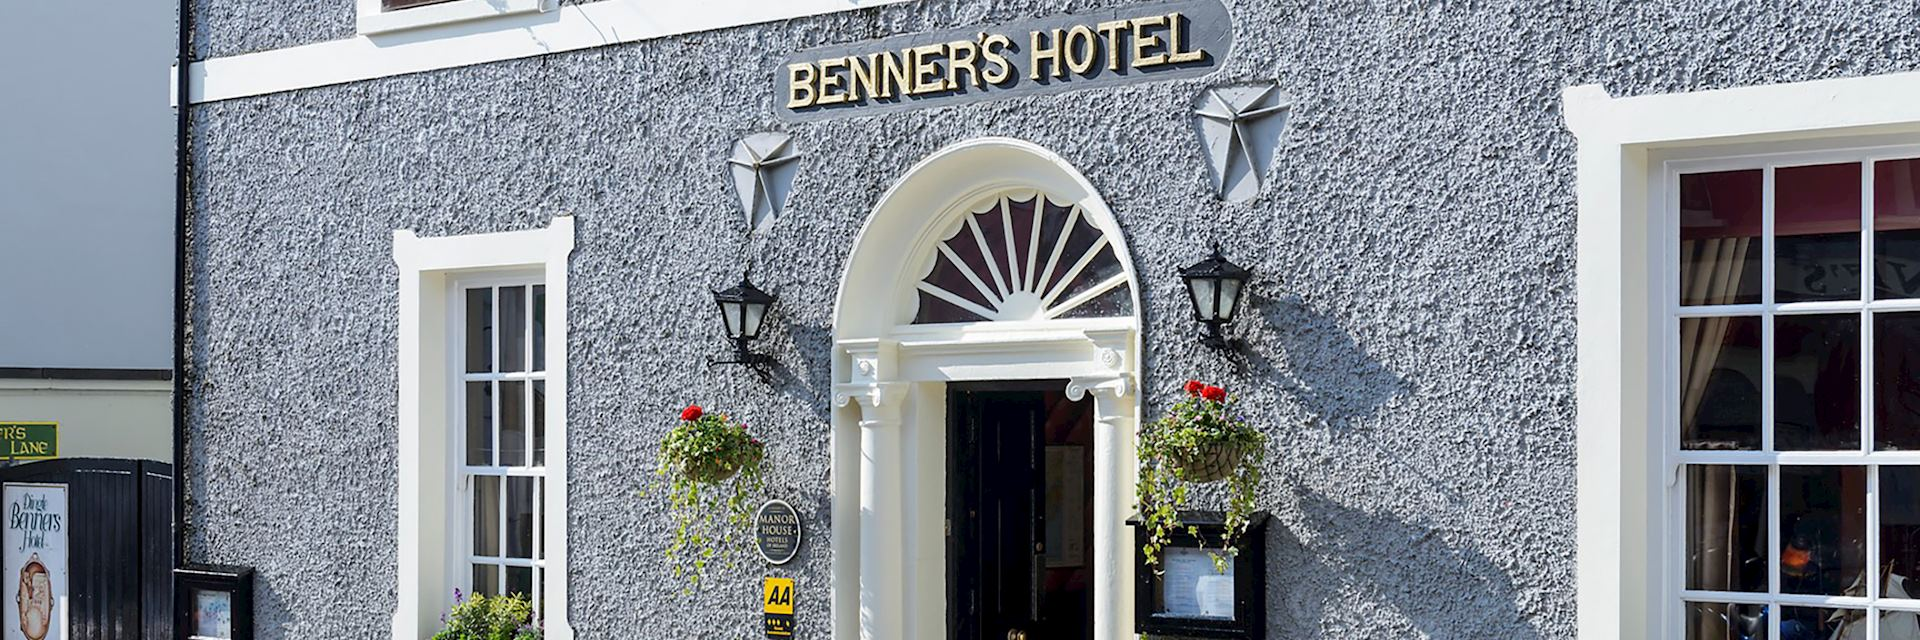 Dingle Benners Hotel, Dingle Peninsula